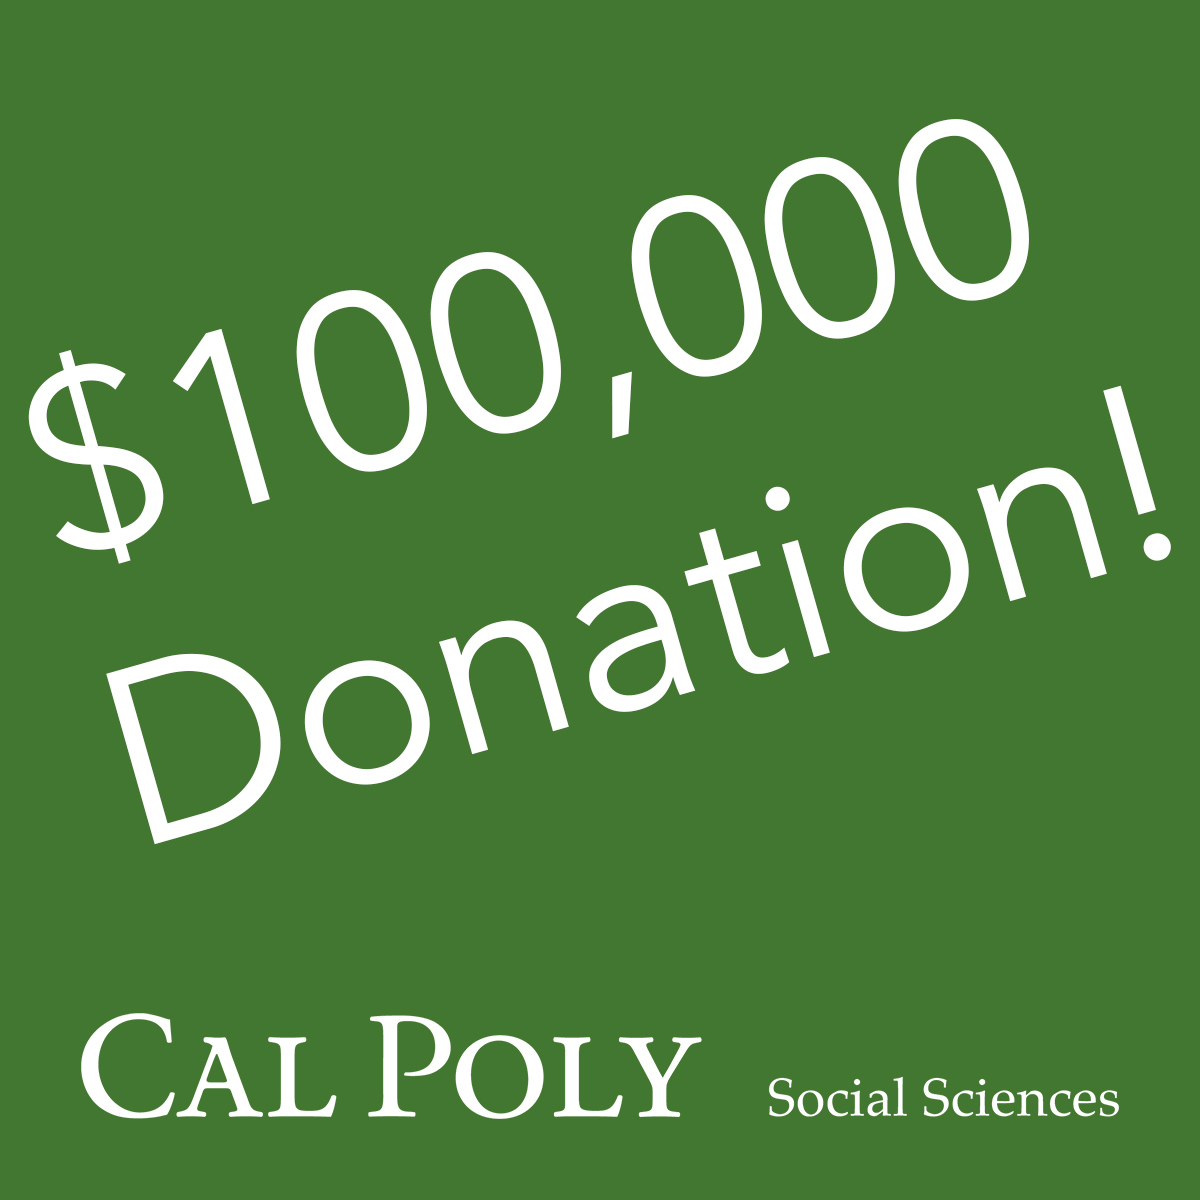 $100,000 Donation to Social Science Department